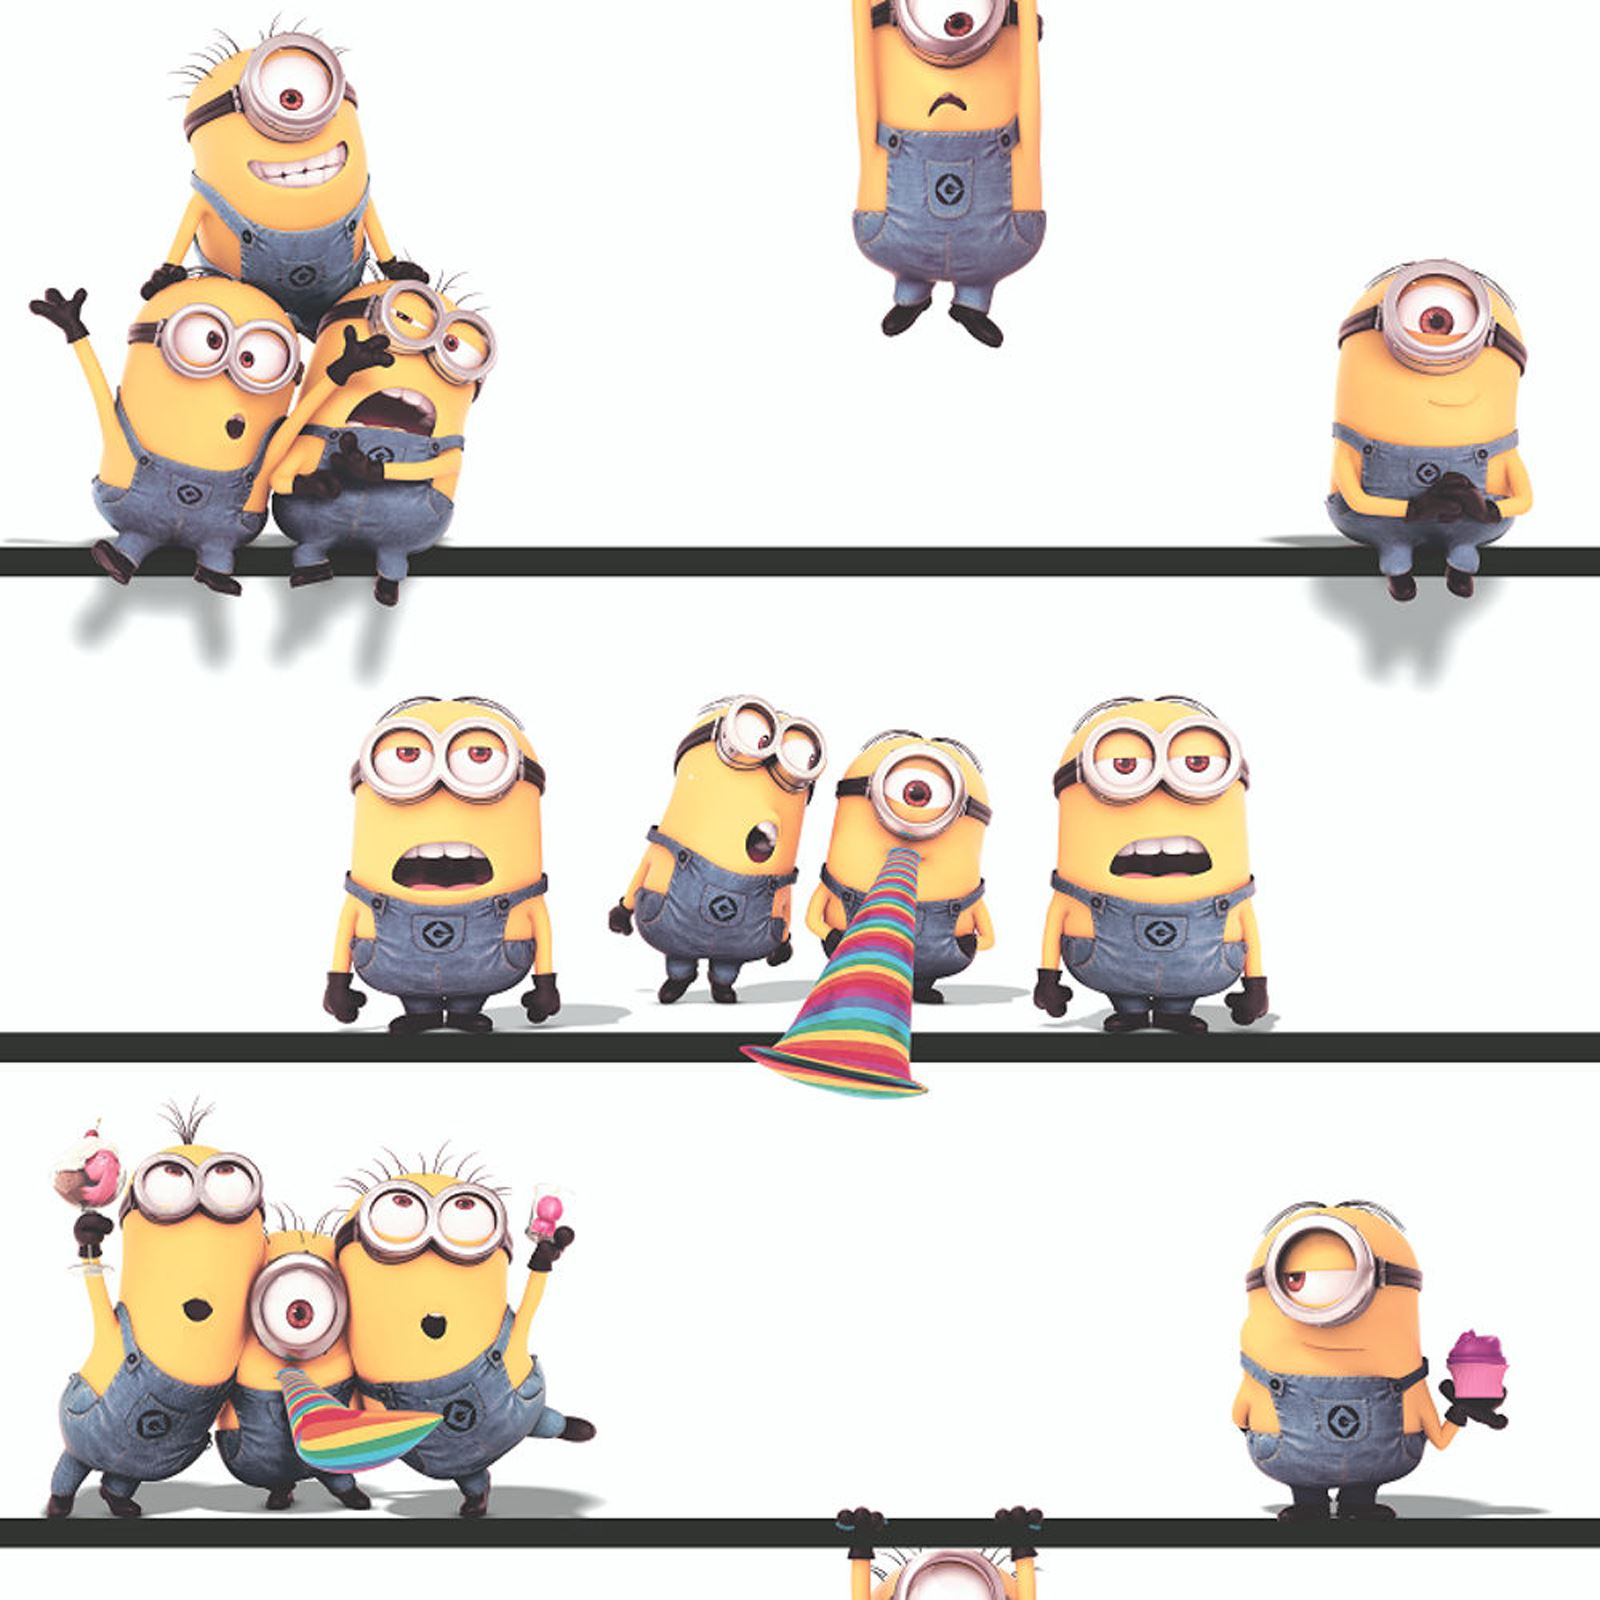 About despicable me minions 10m wallpaper kids bedroom new decor